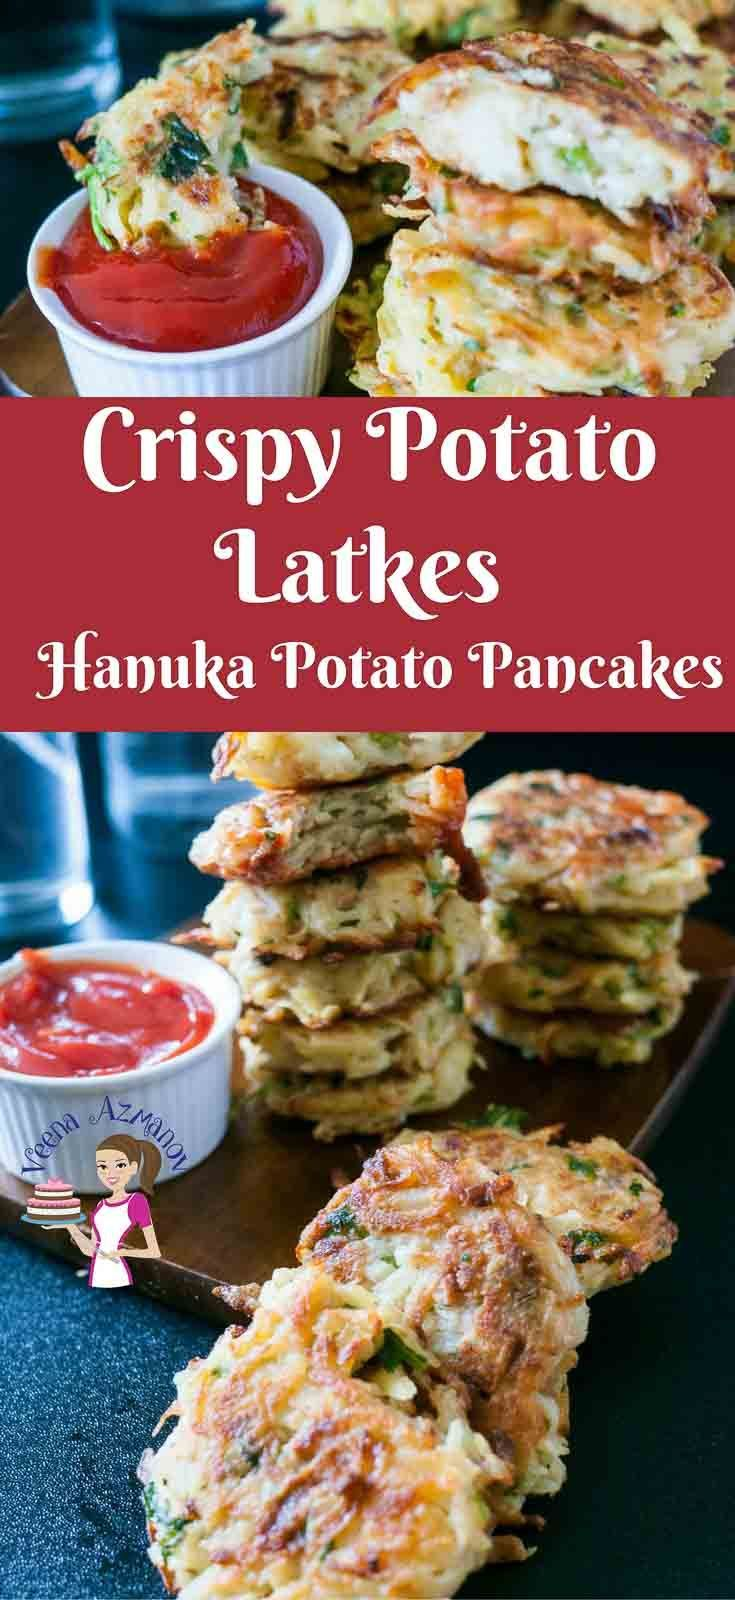 Nothing says Hanuka better than potato latkes for dinner and jam doughnuts for dessert. This simple, easy and effortless recipe makes the best potato pancakes; crispy on the outside soft tender flavored potato on the inside. Seasoned with onions, garlic and fresh herbs these are truly festive. #healthy #lowcalorie #lowfat #potato #latkes #potatopatties #potatocakes #cakes #patties #vegetarian #hanukah #jewish #food #veenaazmanov @veenaazmanov